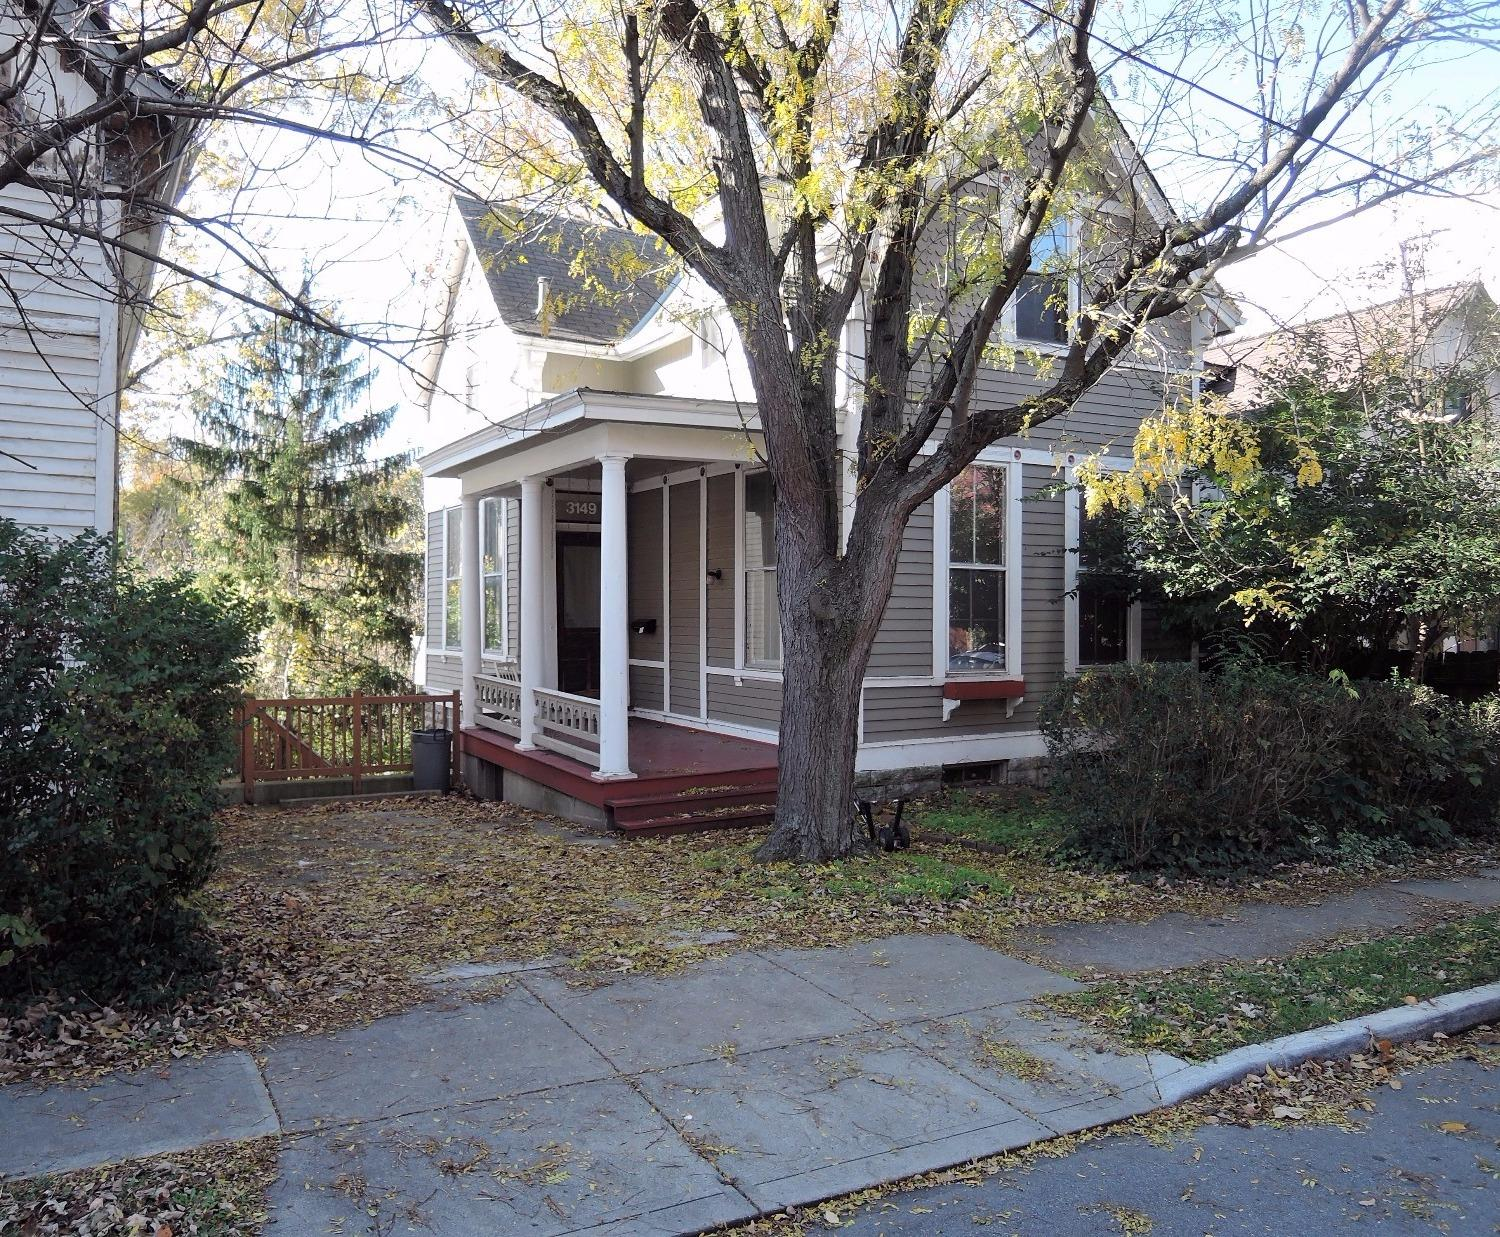 1 Block to UC. Charming Traditional backing up to Burnet Woods, overlooking lake when leaves are off trees.